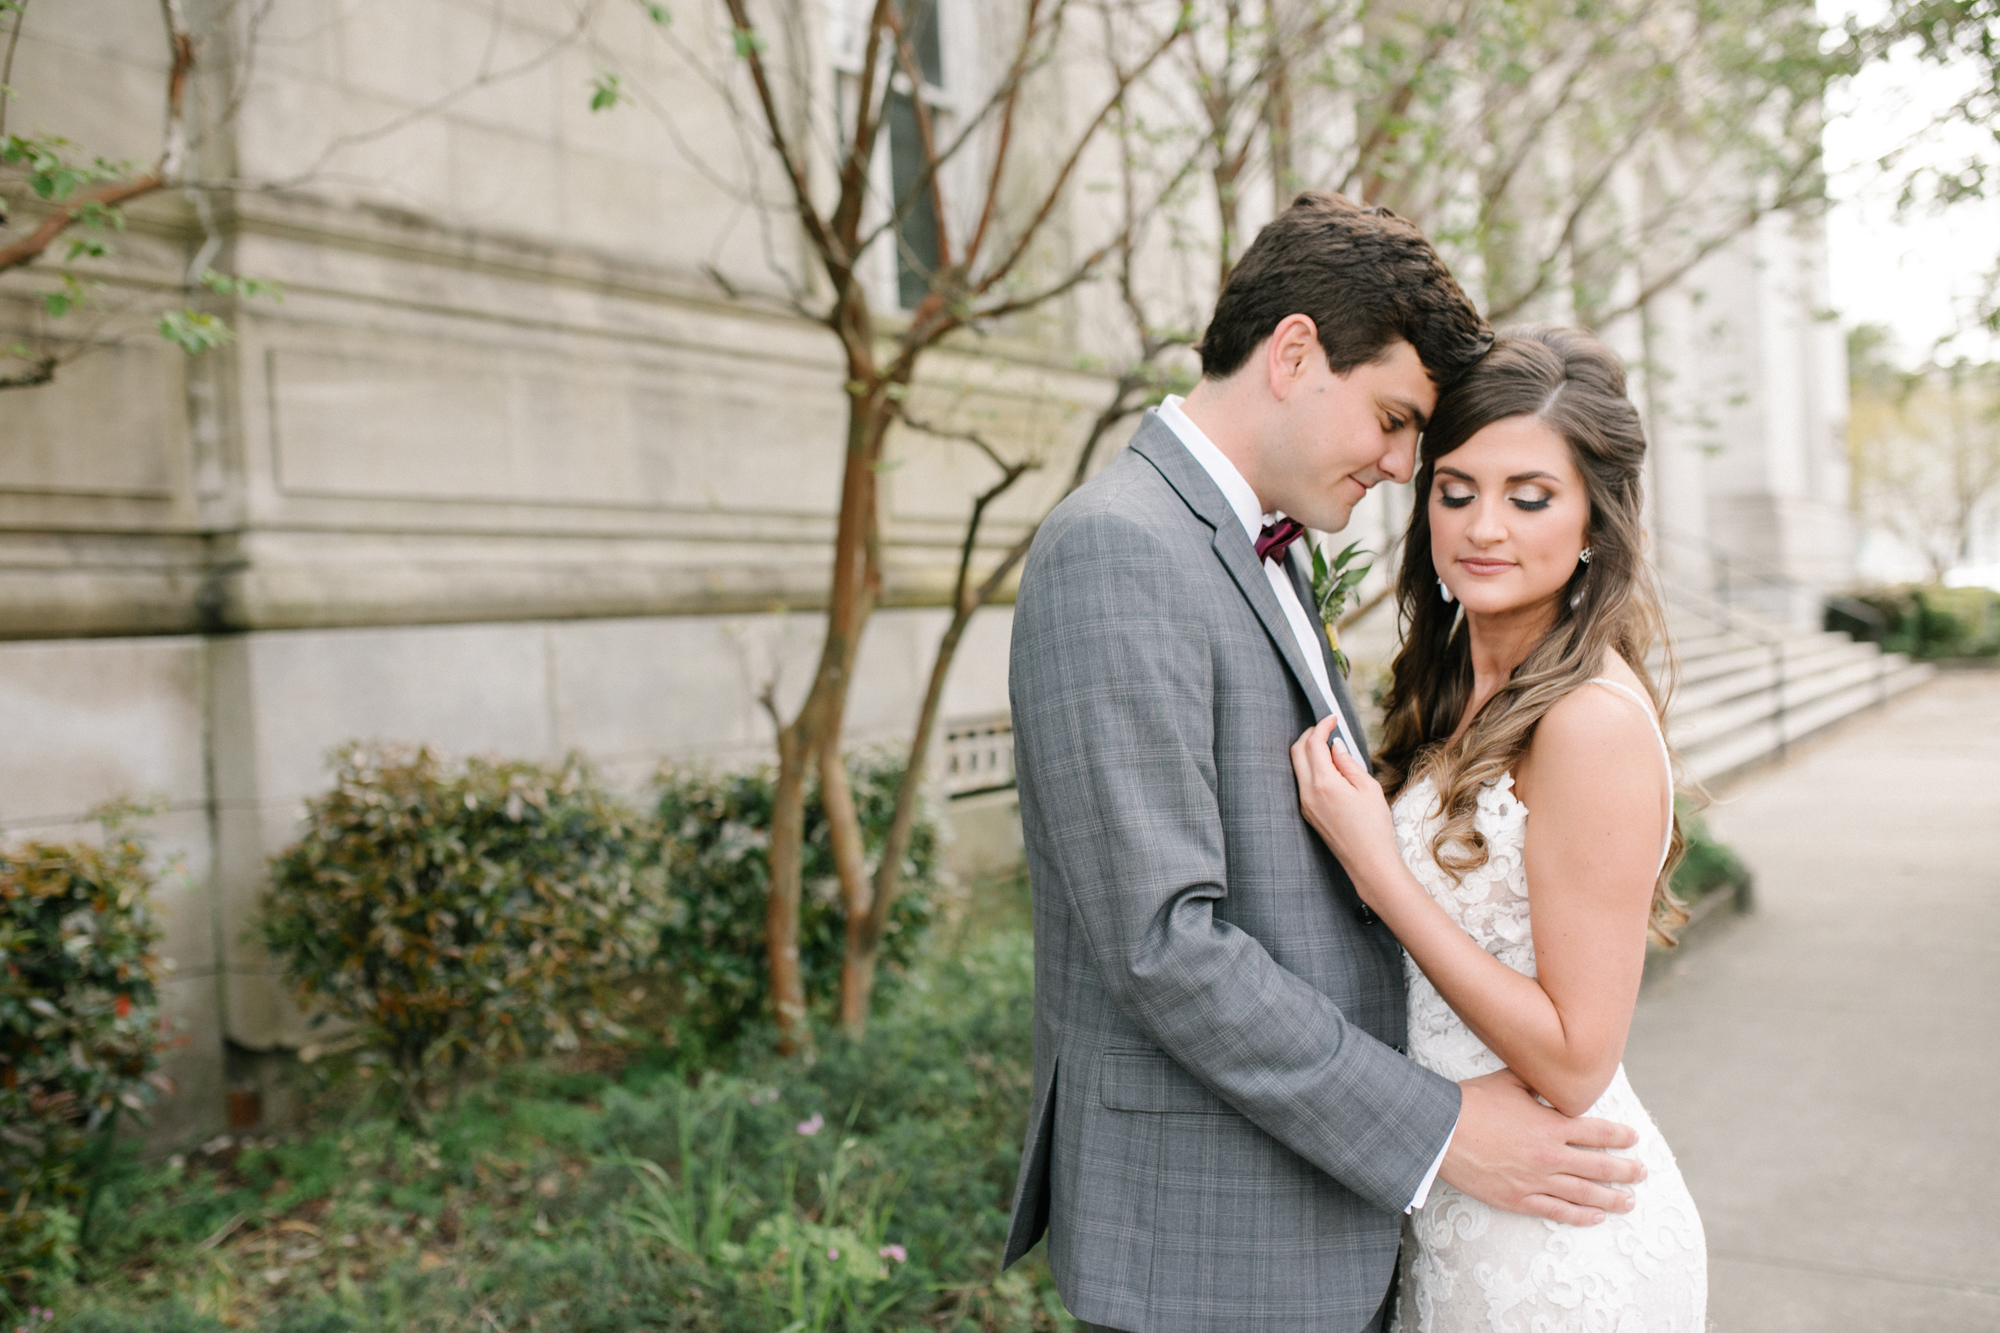 Gulfport_Wedding_Photographer-51.jpg